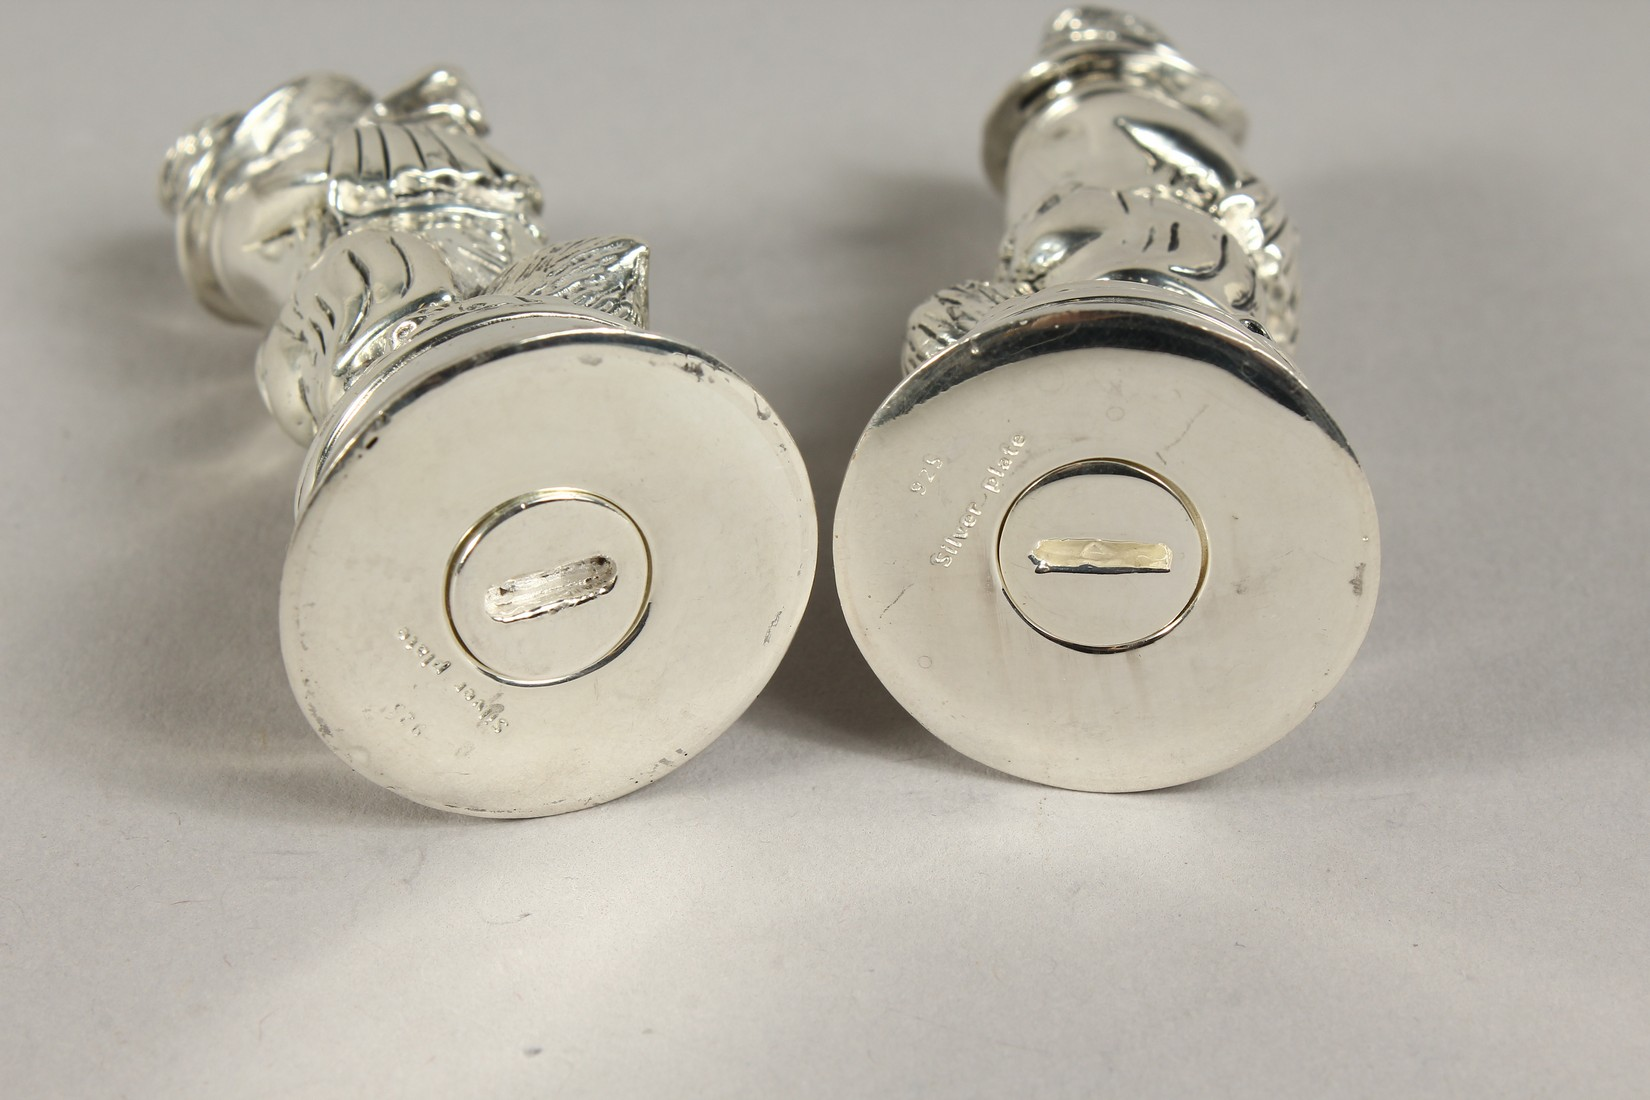 A PAIR OF SILVER PLATE FOX SALT AND PEPPERS - Image 4 of 4